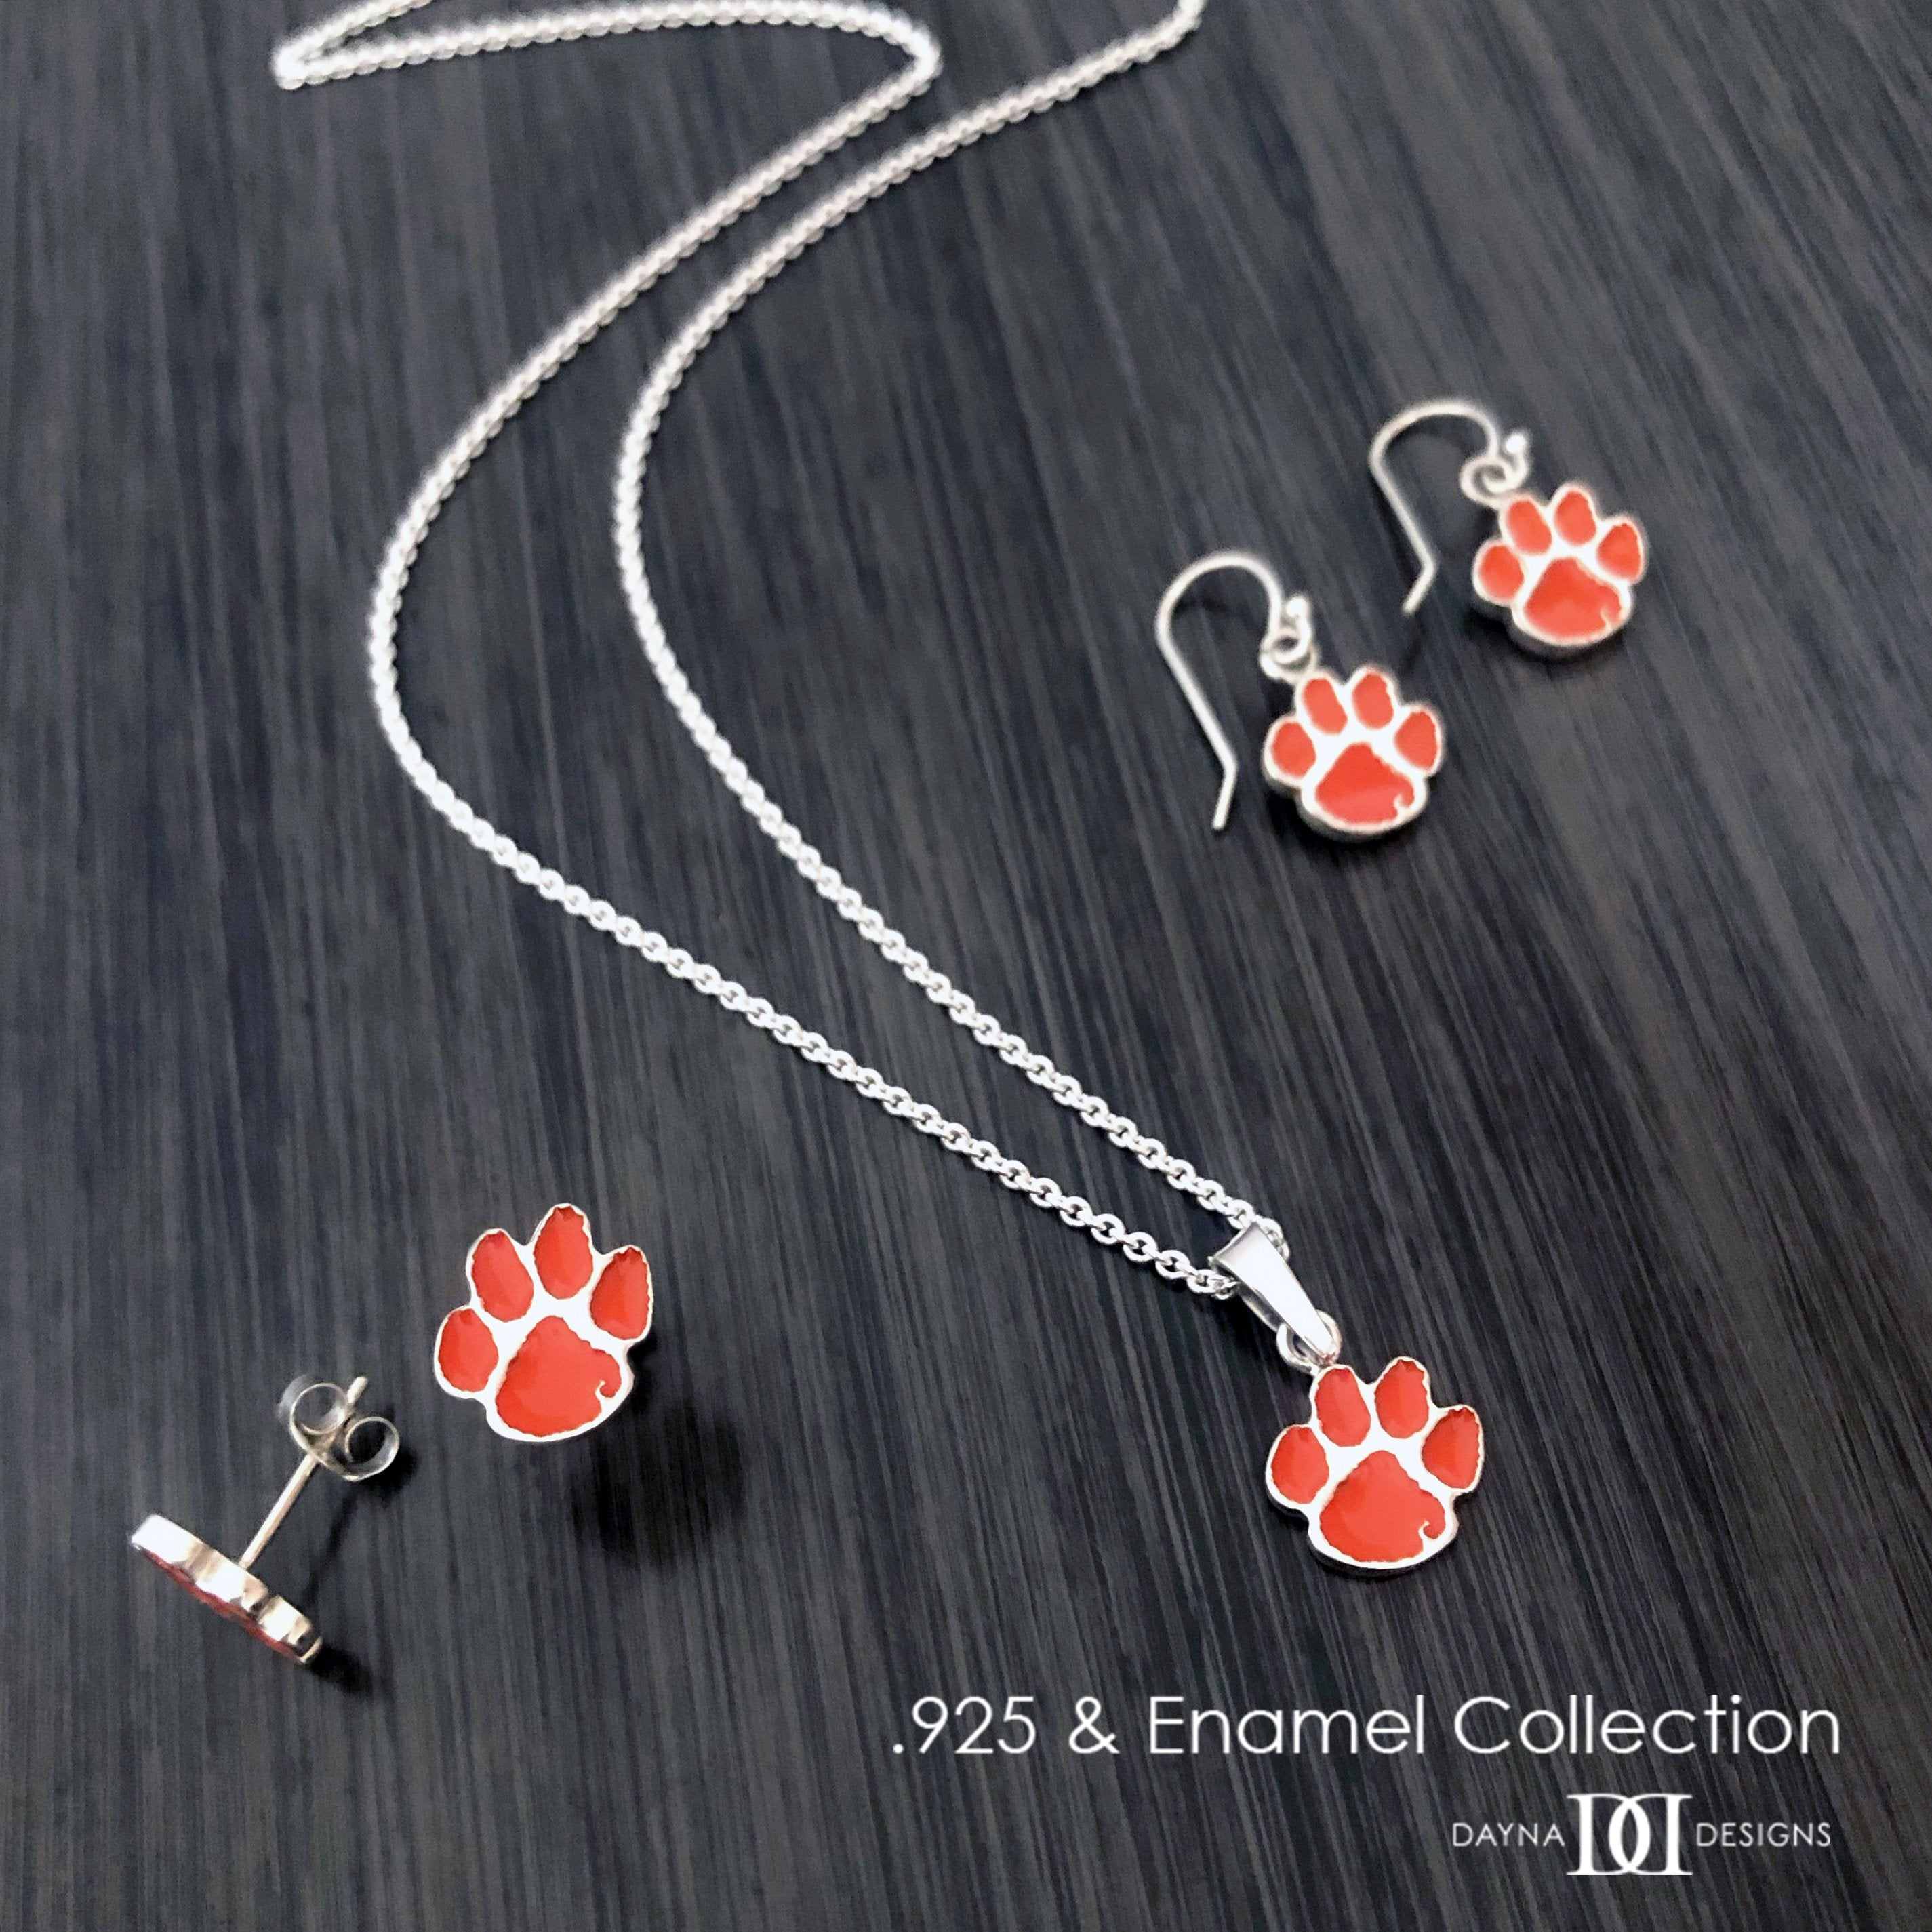 Clemson University Heart Necklace - Enamel